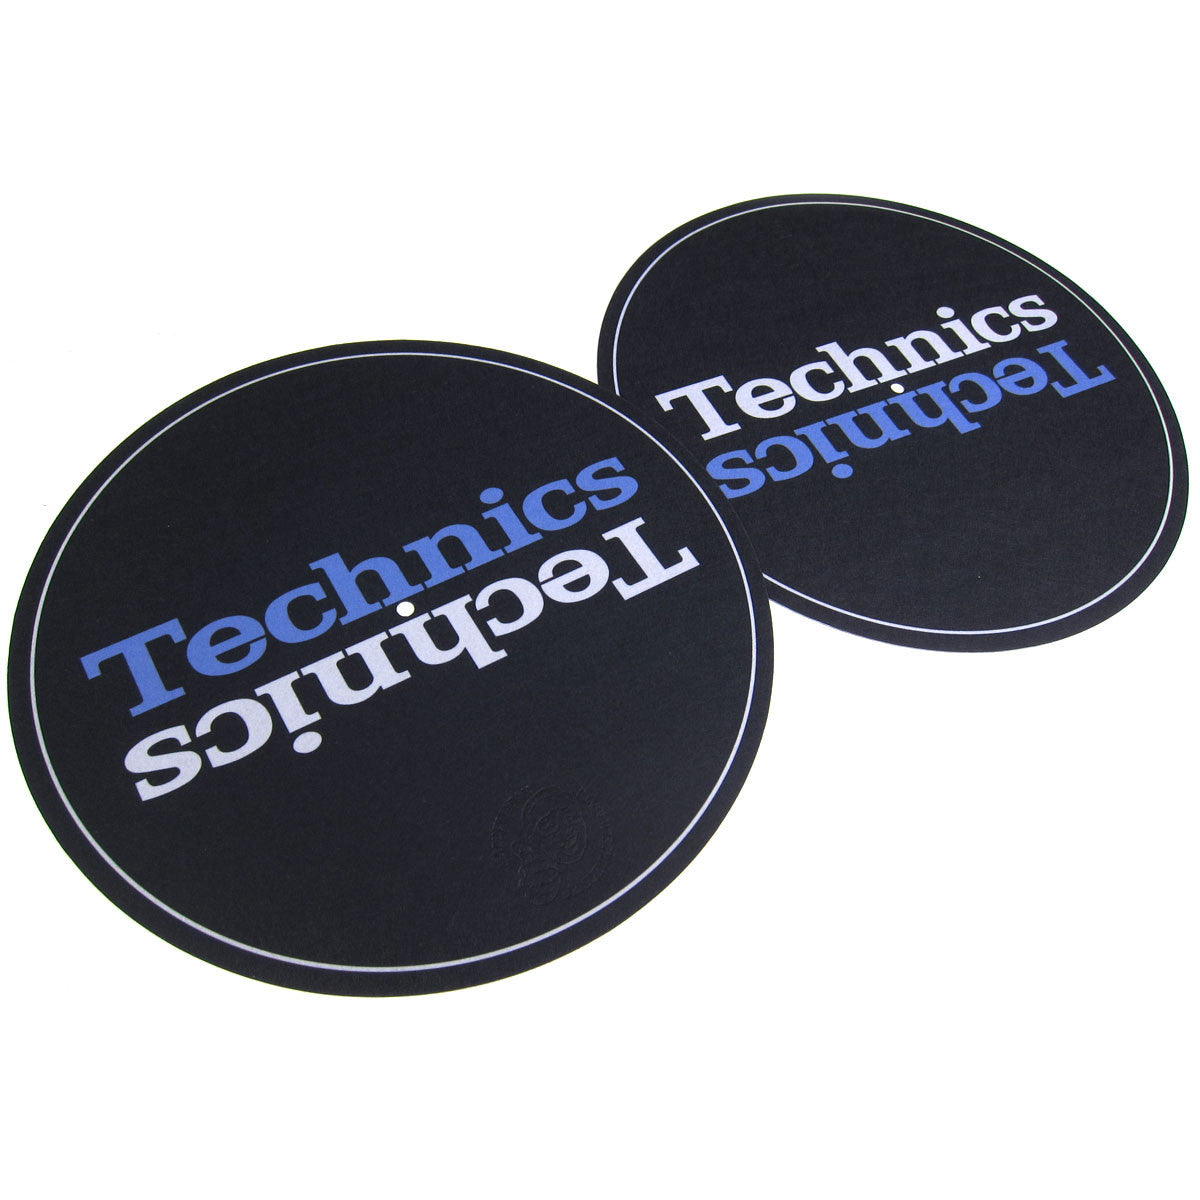 Stokyo JP: Dr. Suzuki Mix Edition Slipmats - Technics Edition pair